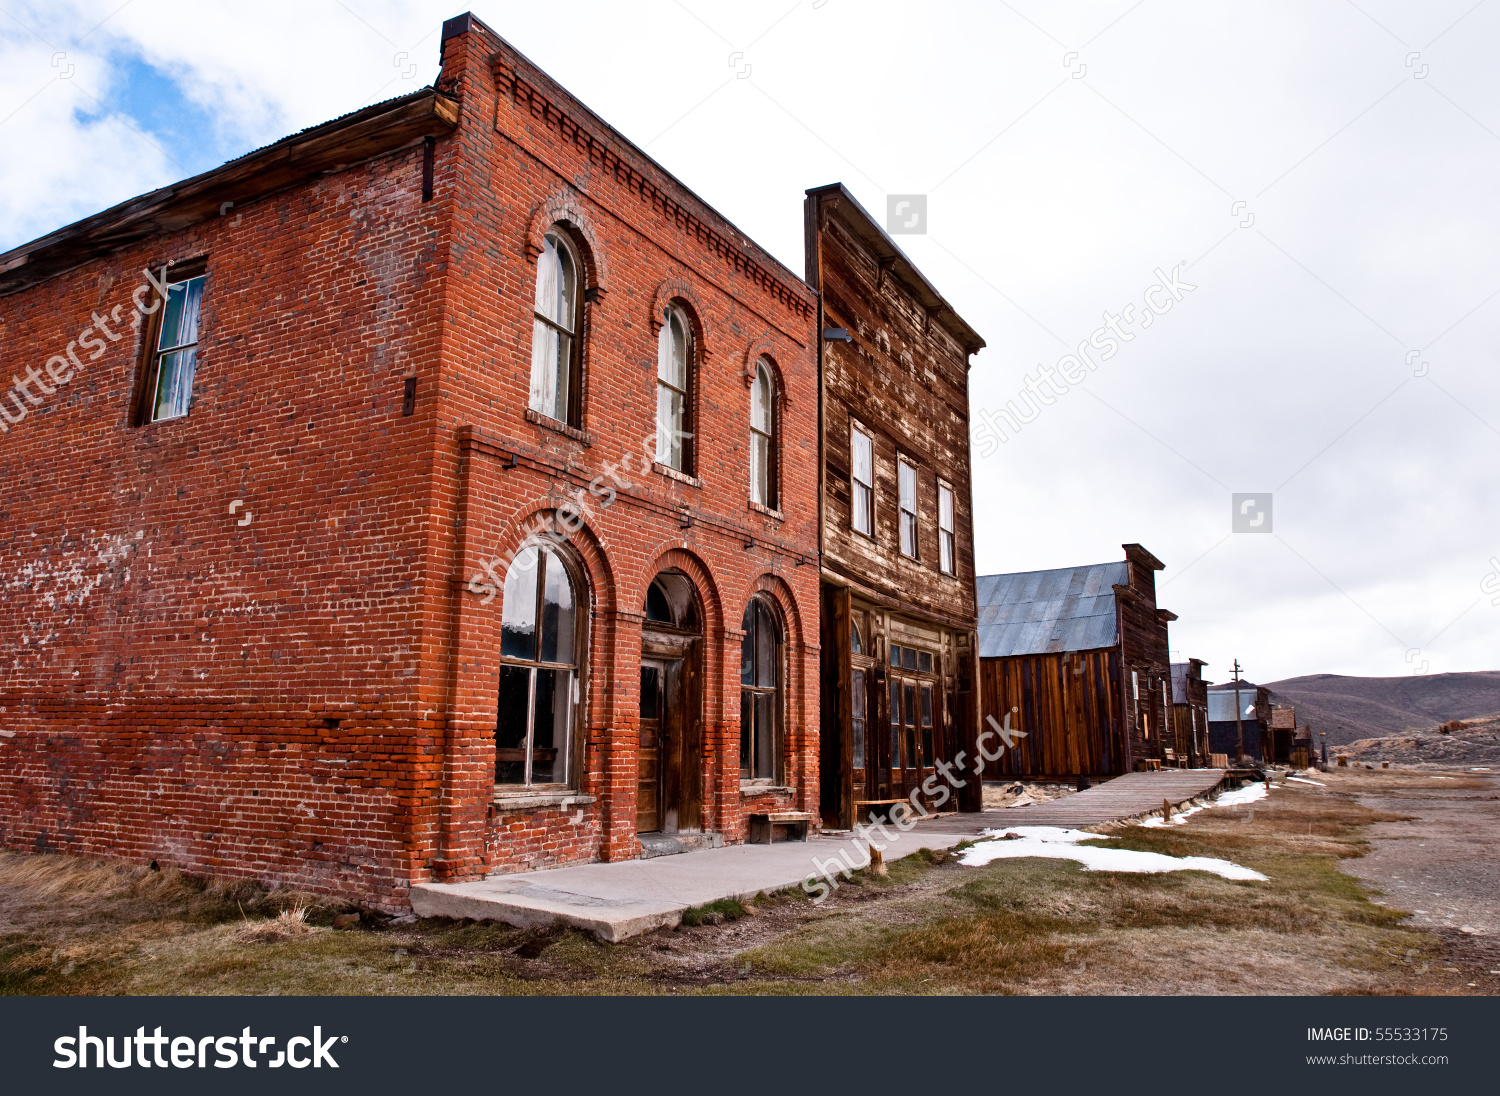 Historic Buildings In Bodie California Stock Photo 55533175.